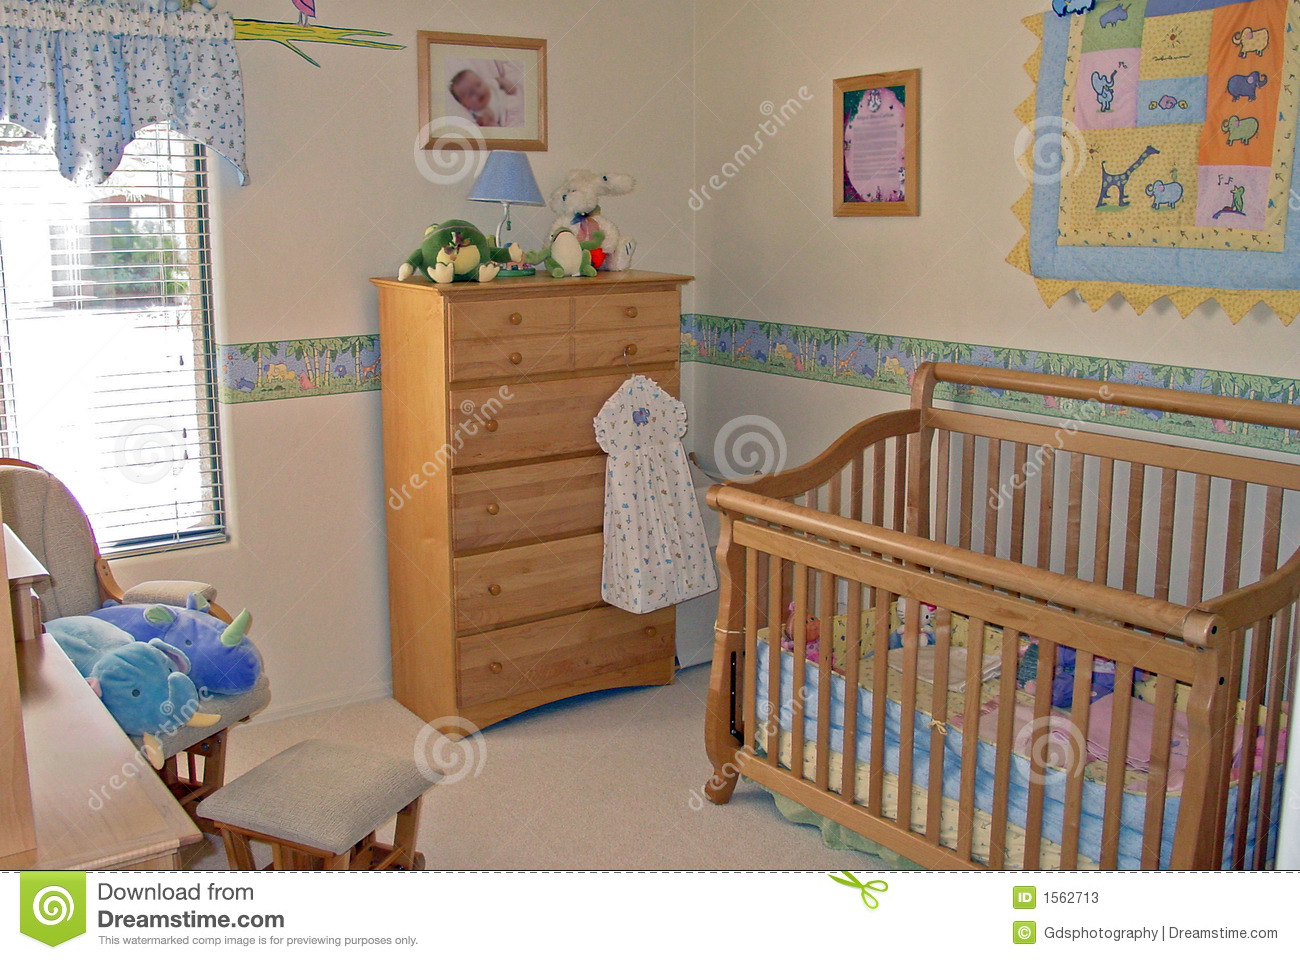 Amelia S Room Toddler Bedroom: Bedroom Baby's Room Stock Image. Image Of Crib, Guest